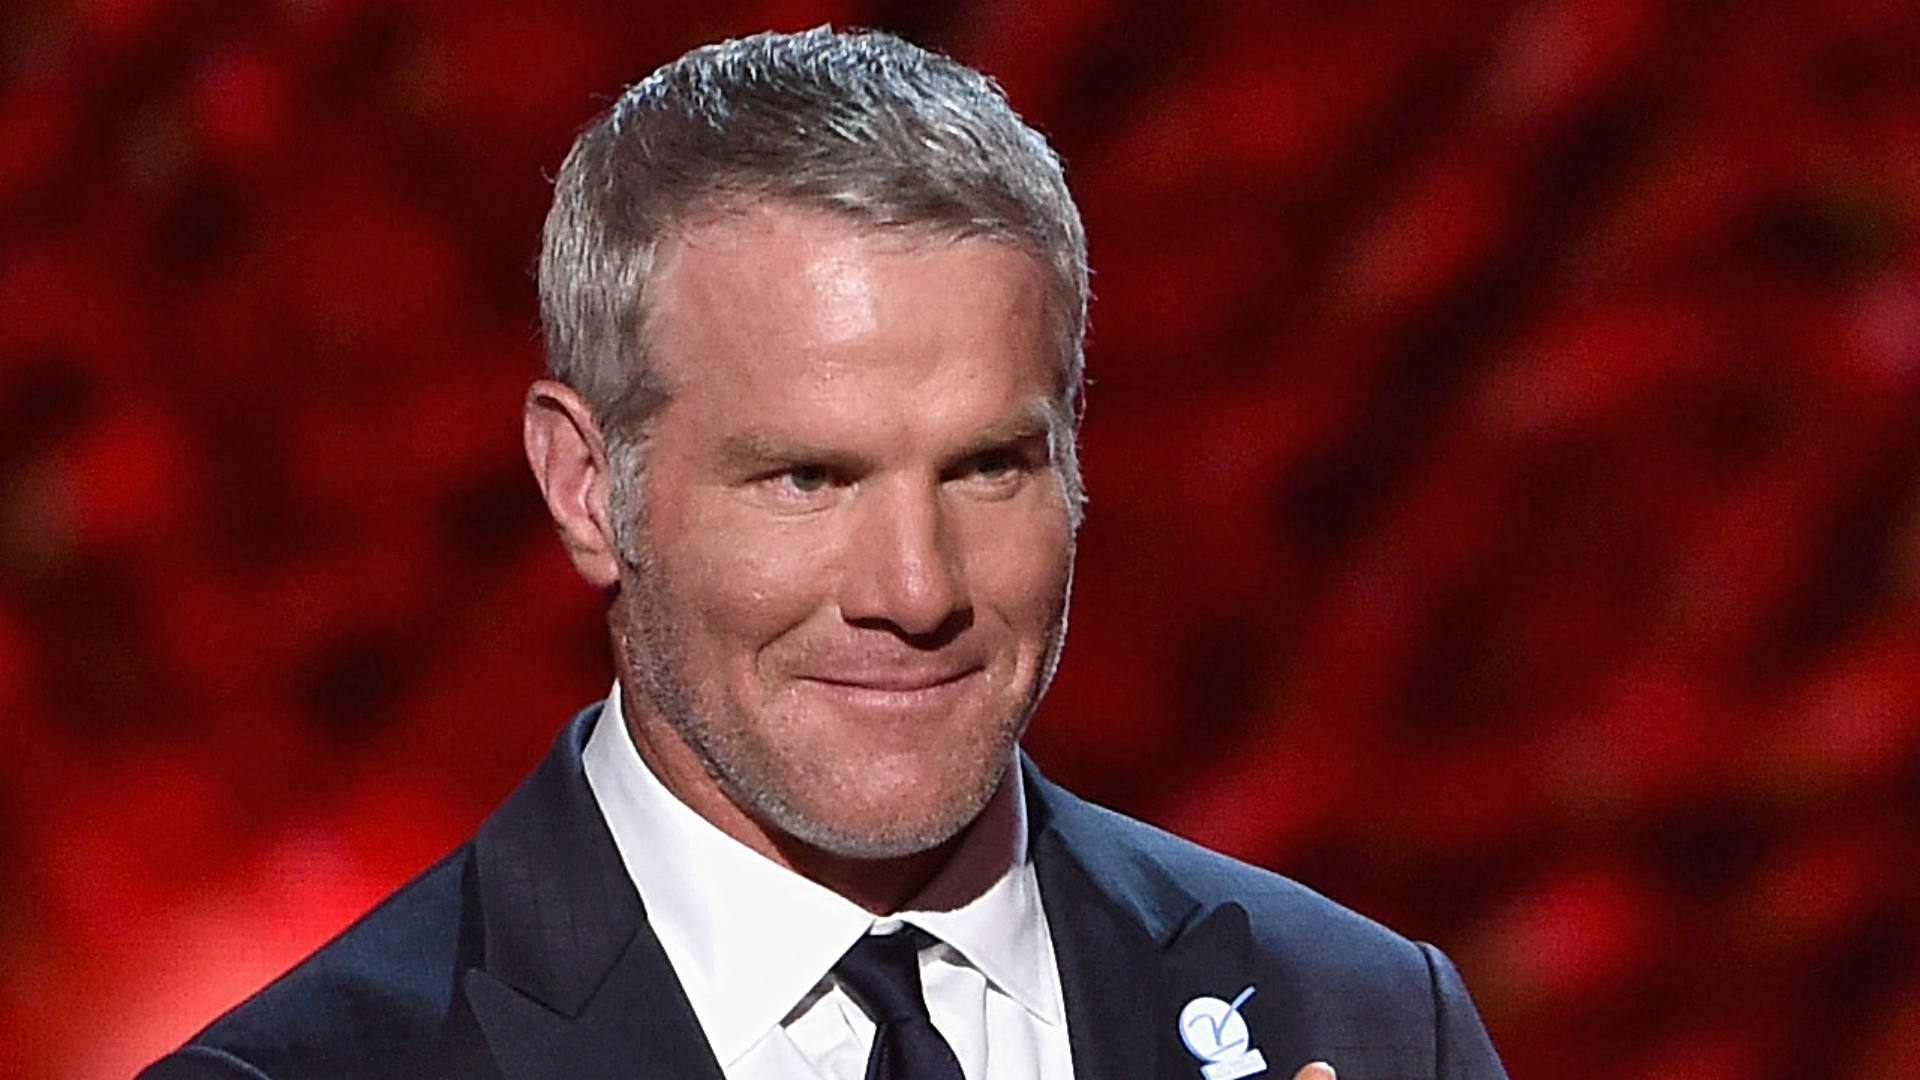 brett favre - photo #31